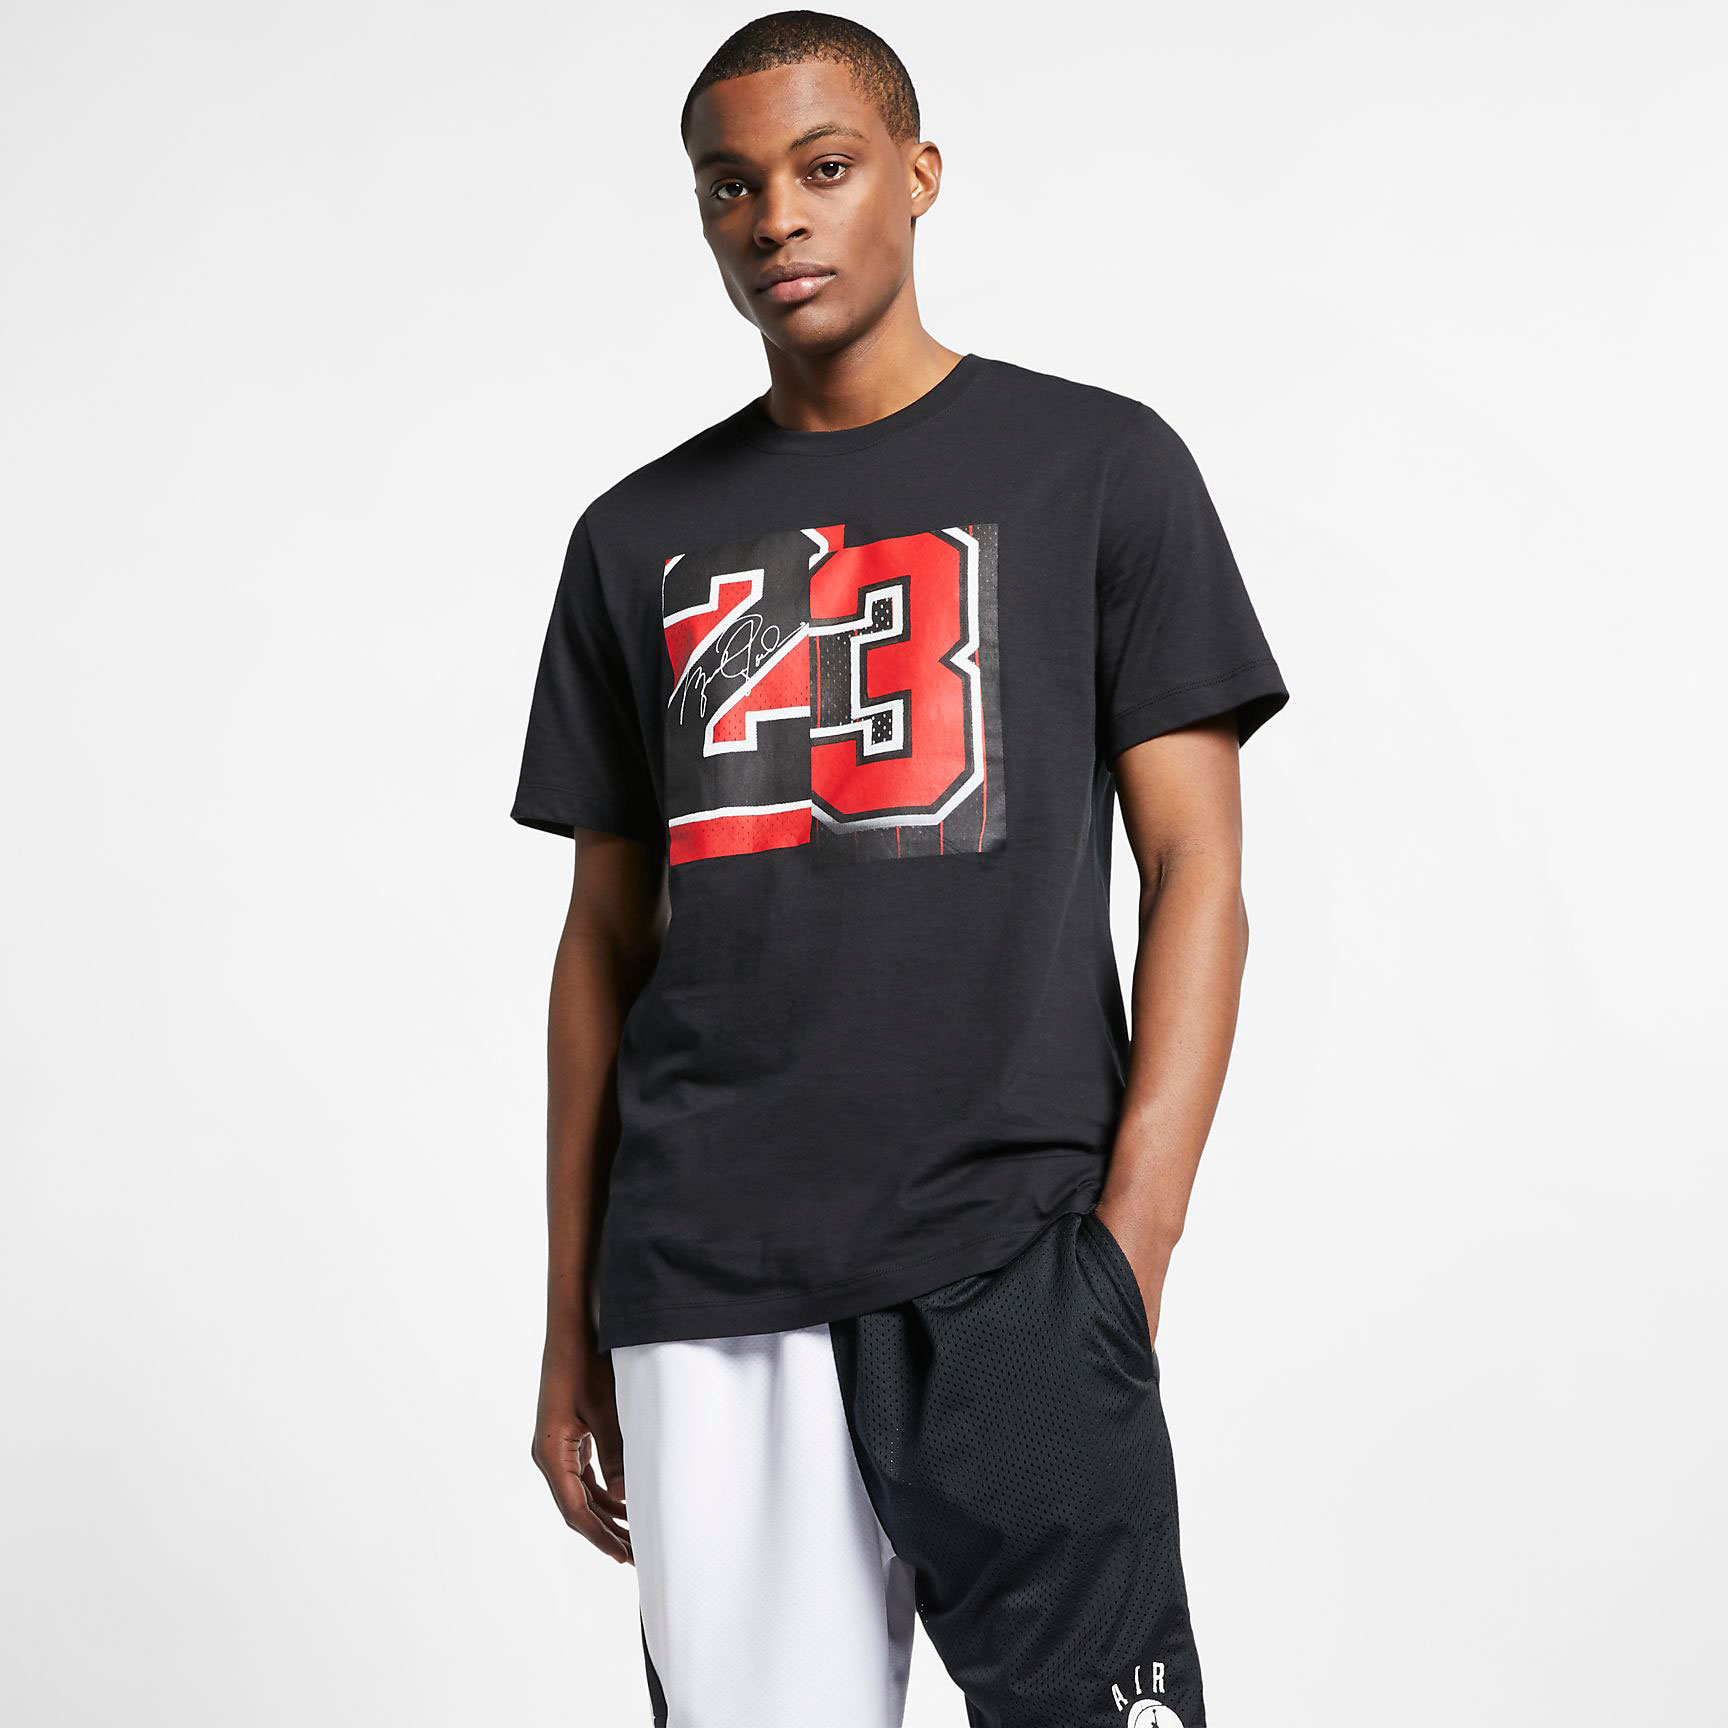 air-jordan-4-bred-2019-shirt-match-2